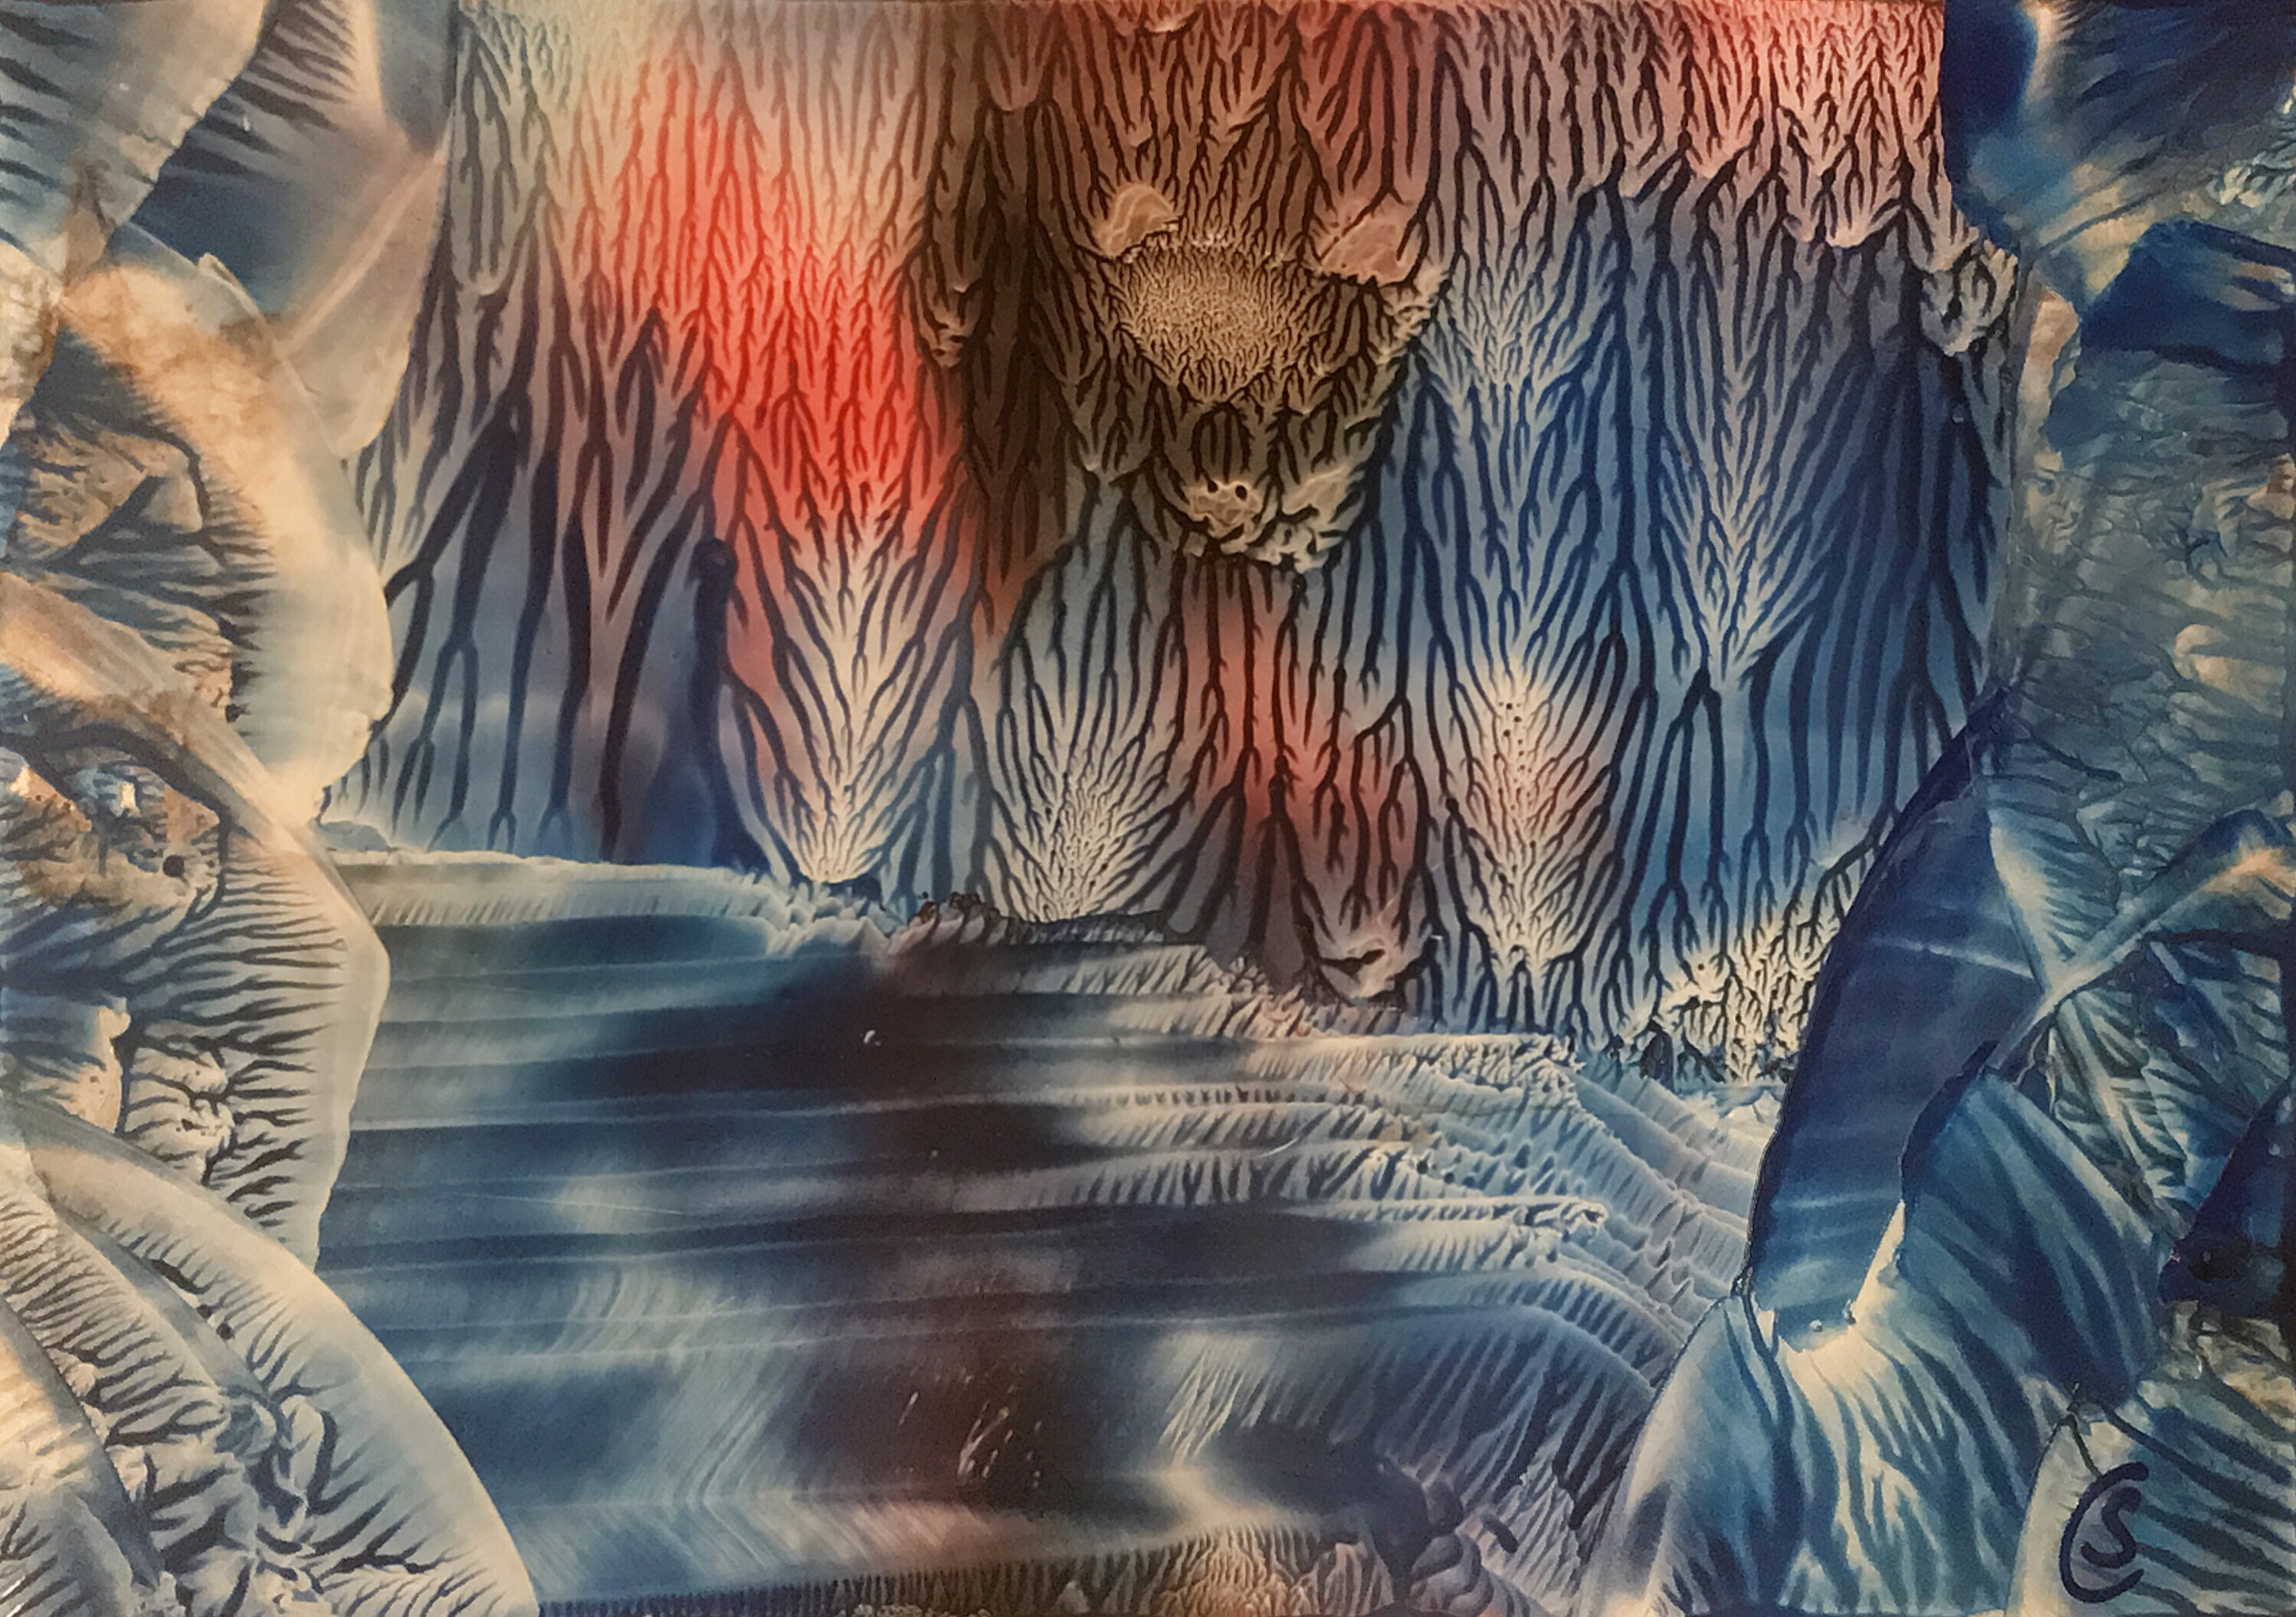 Blue Grotto / Blaue Grotte; encaustic on paper, 21x15